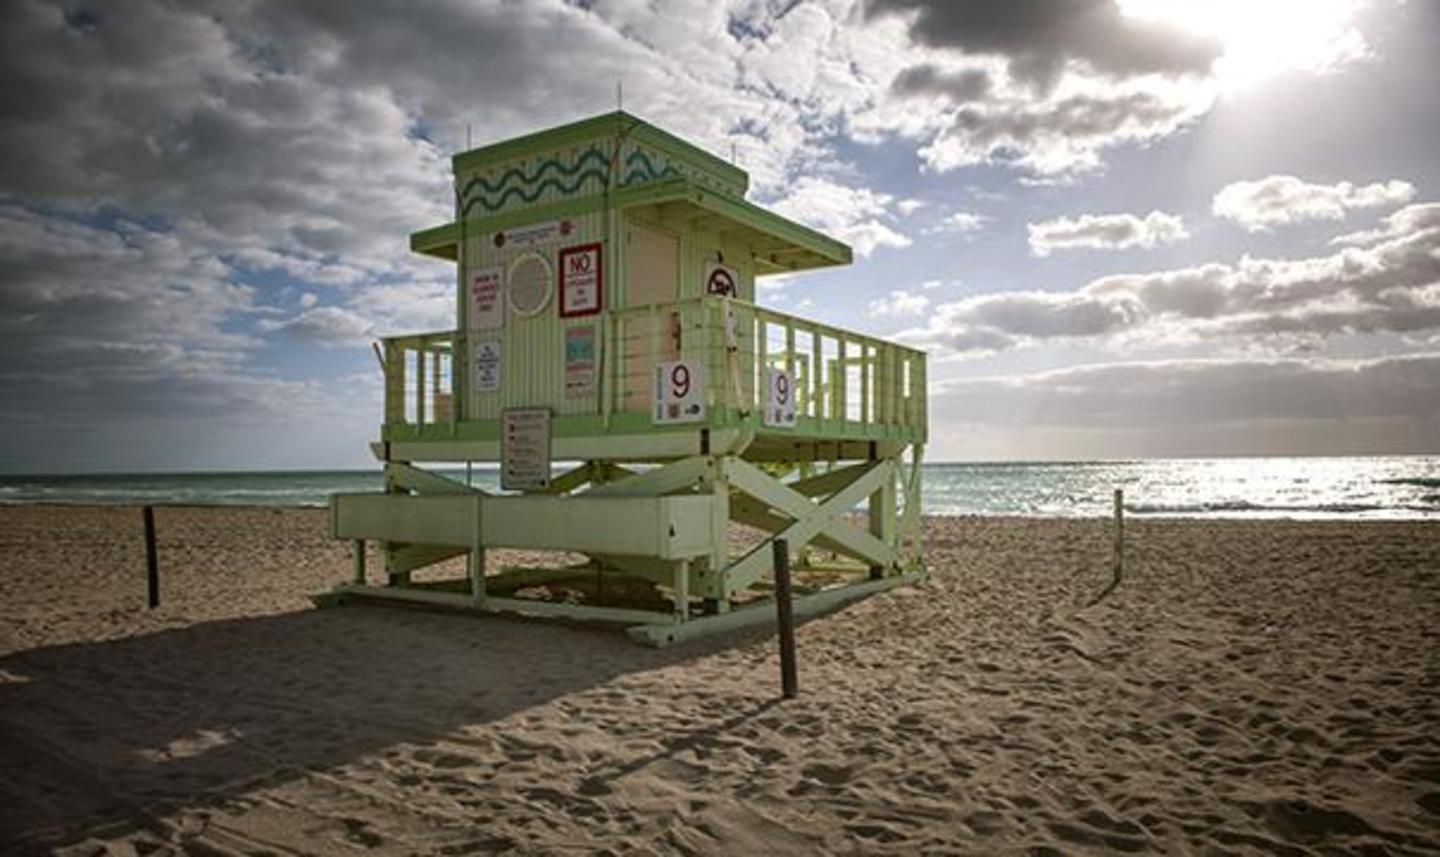 Haulover Park Beach lifeguard stand